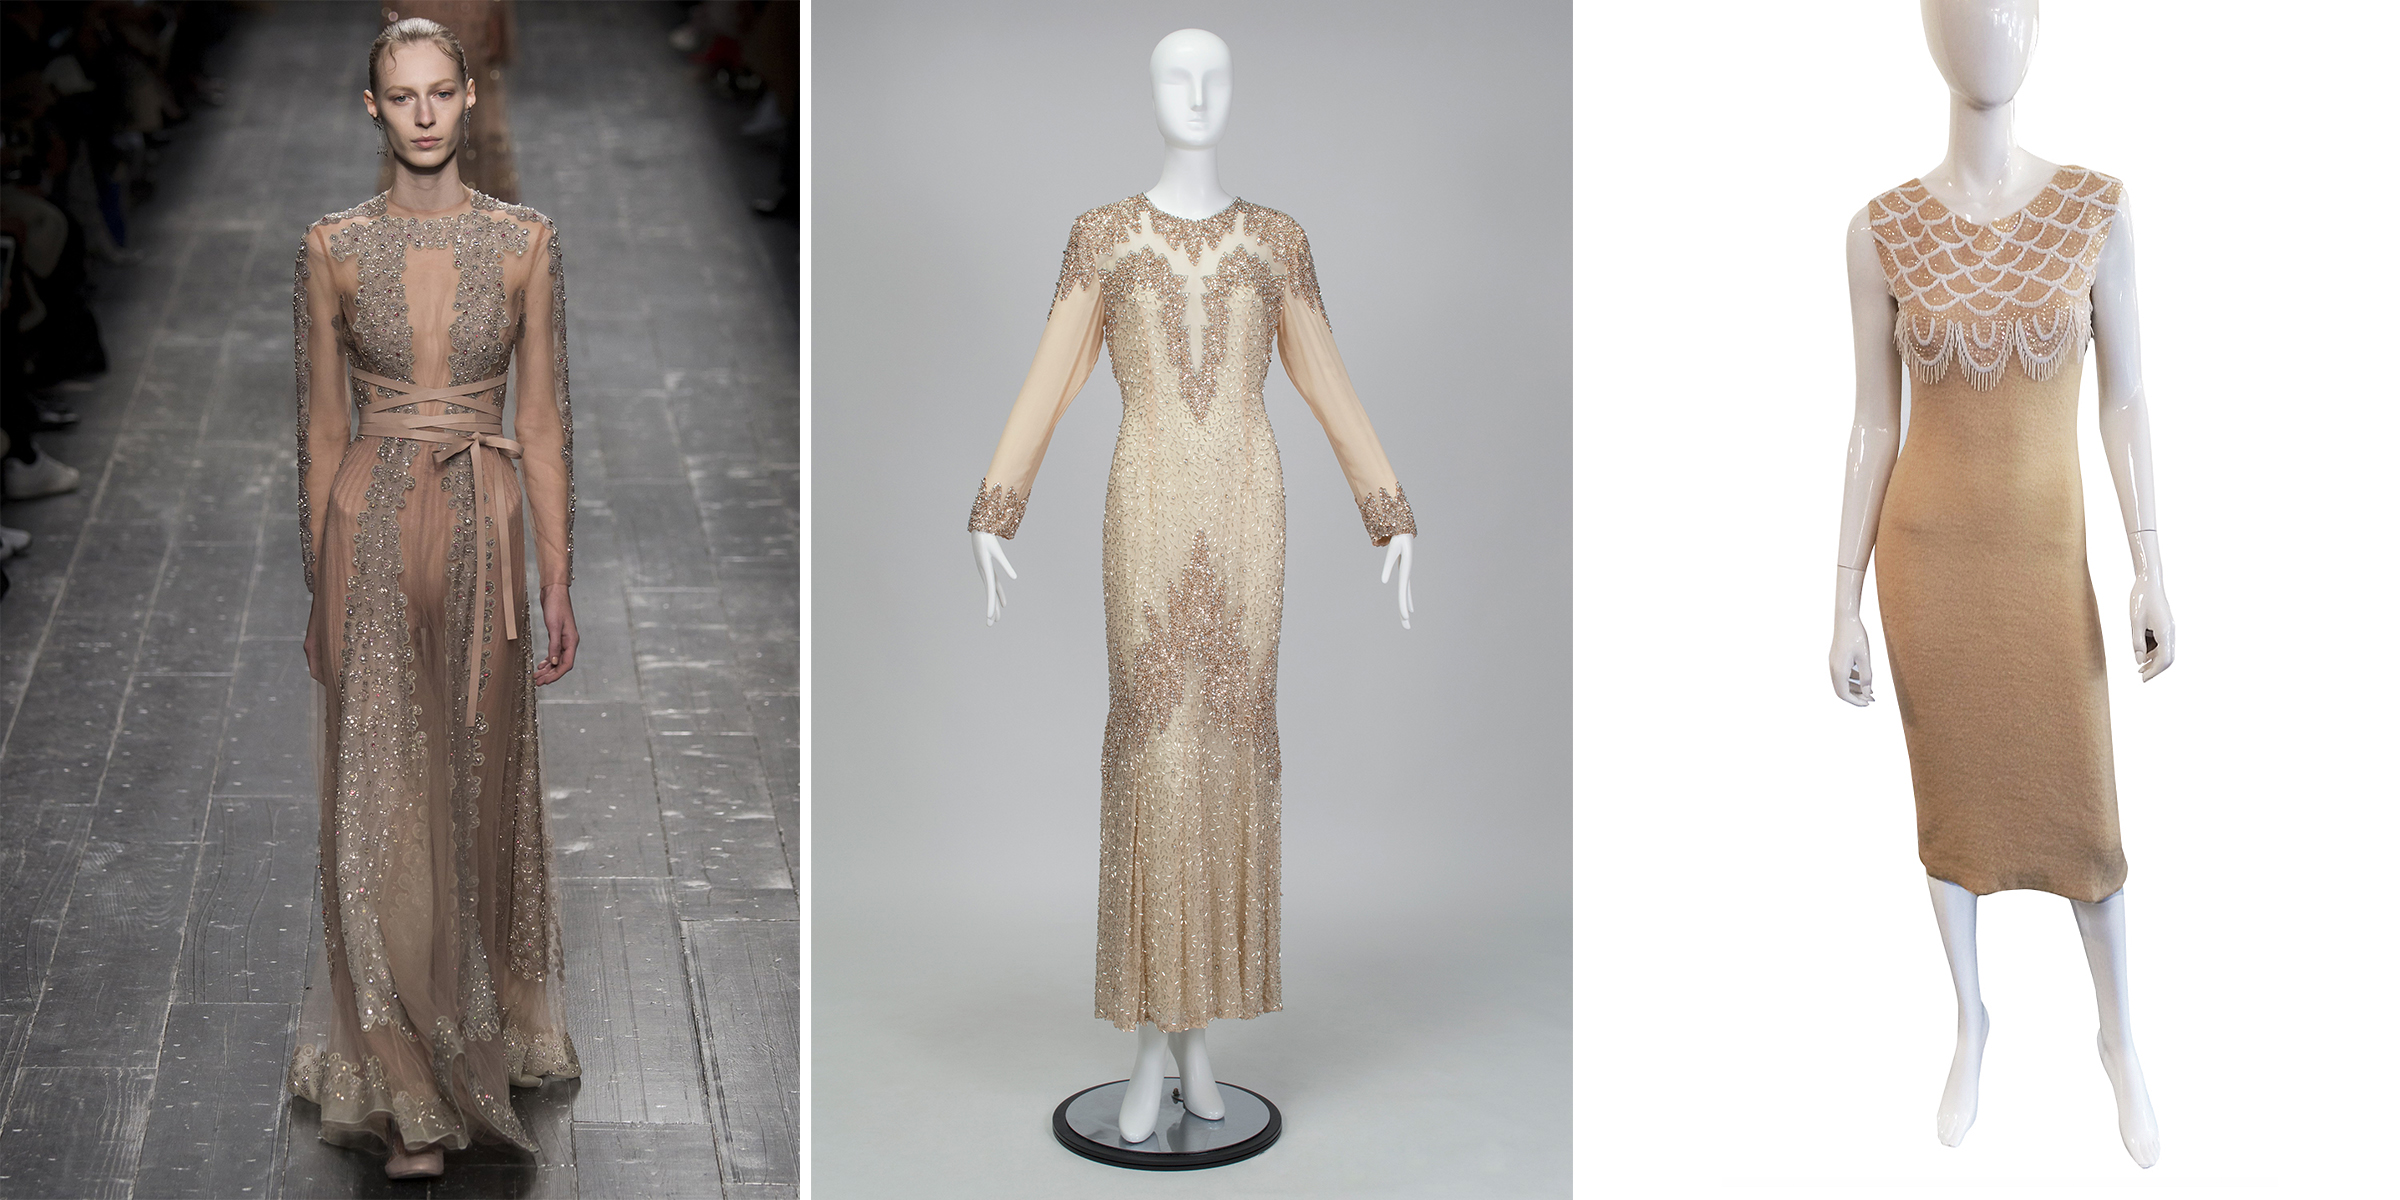 219db50b809 A Valentino Haute Couture gown (A/W 2016) compared with a similar vintage